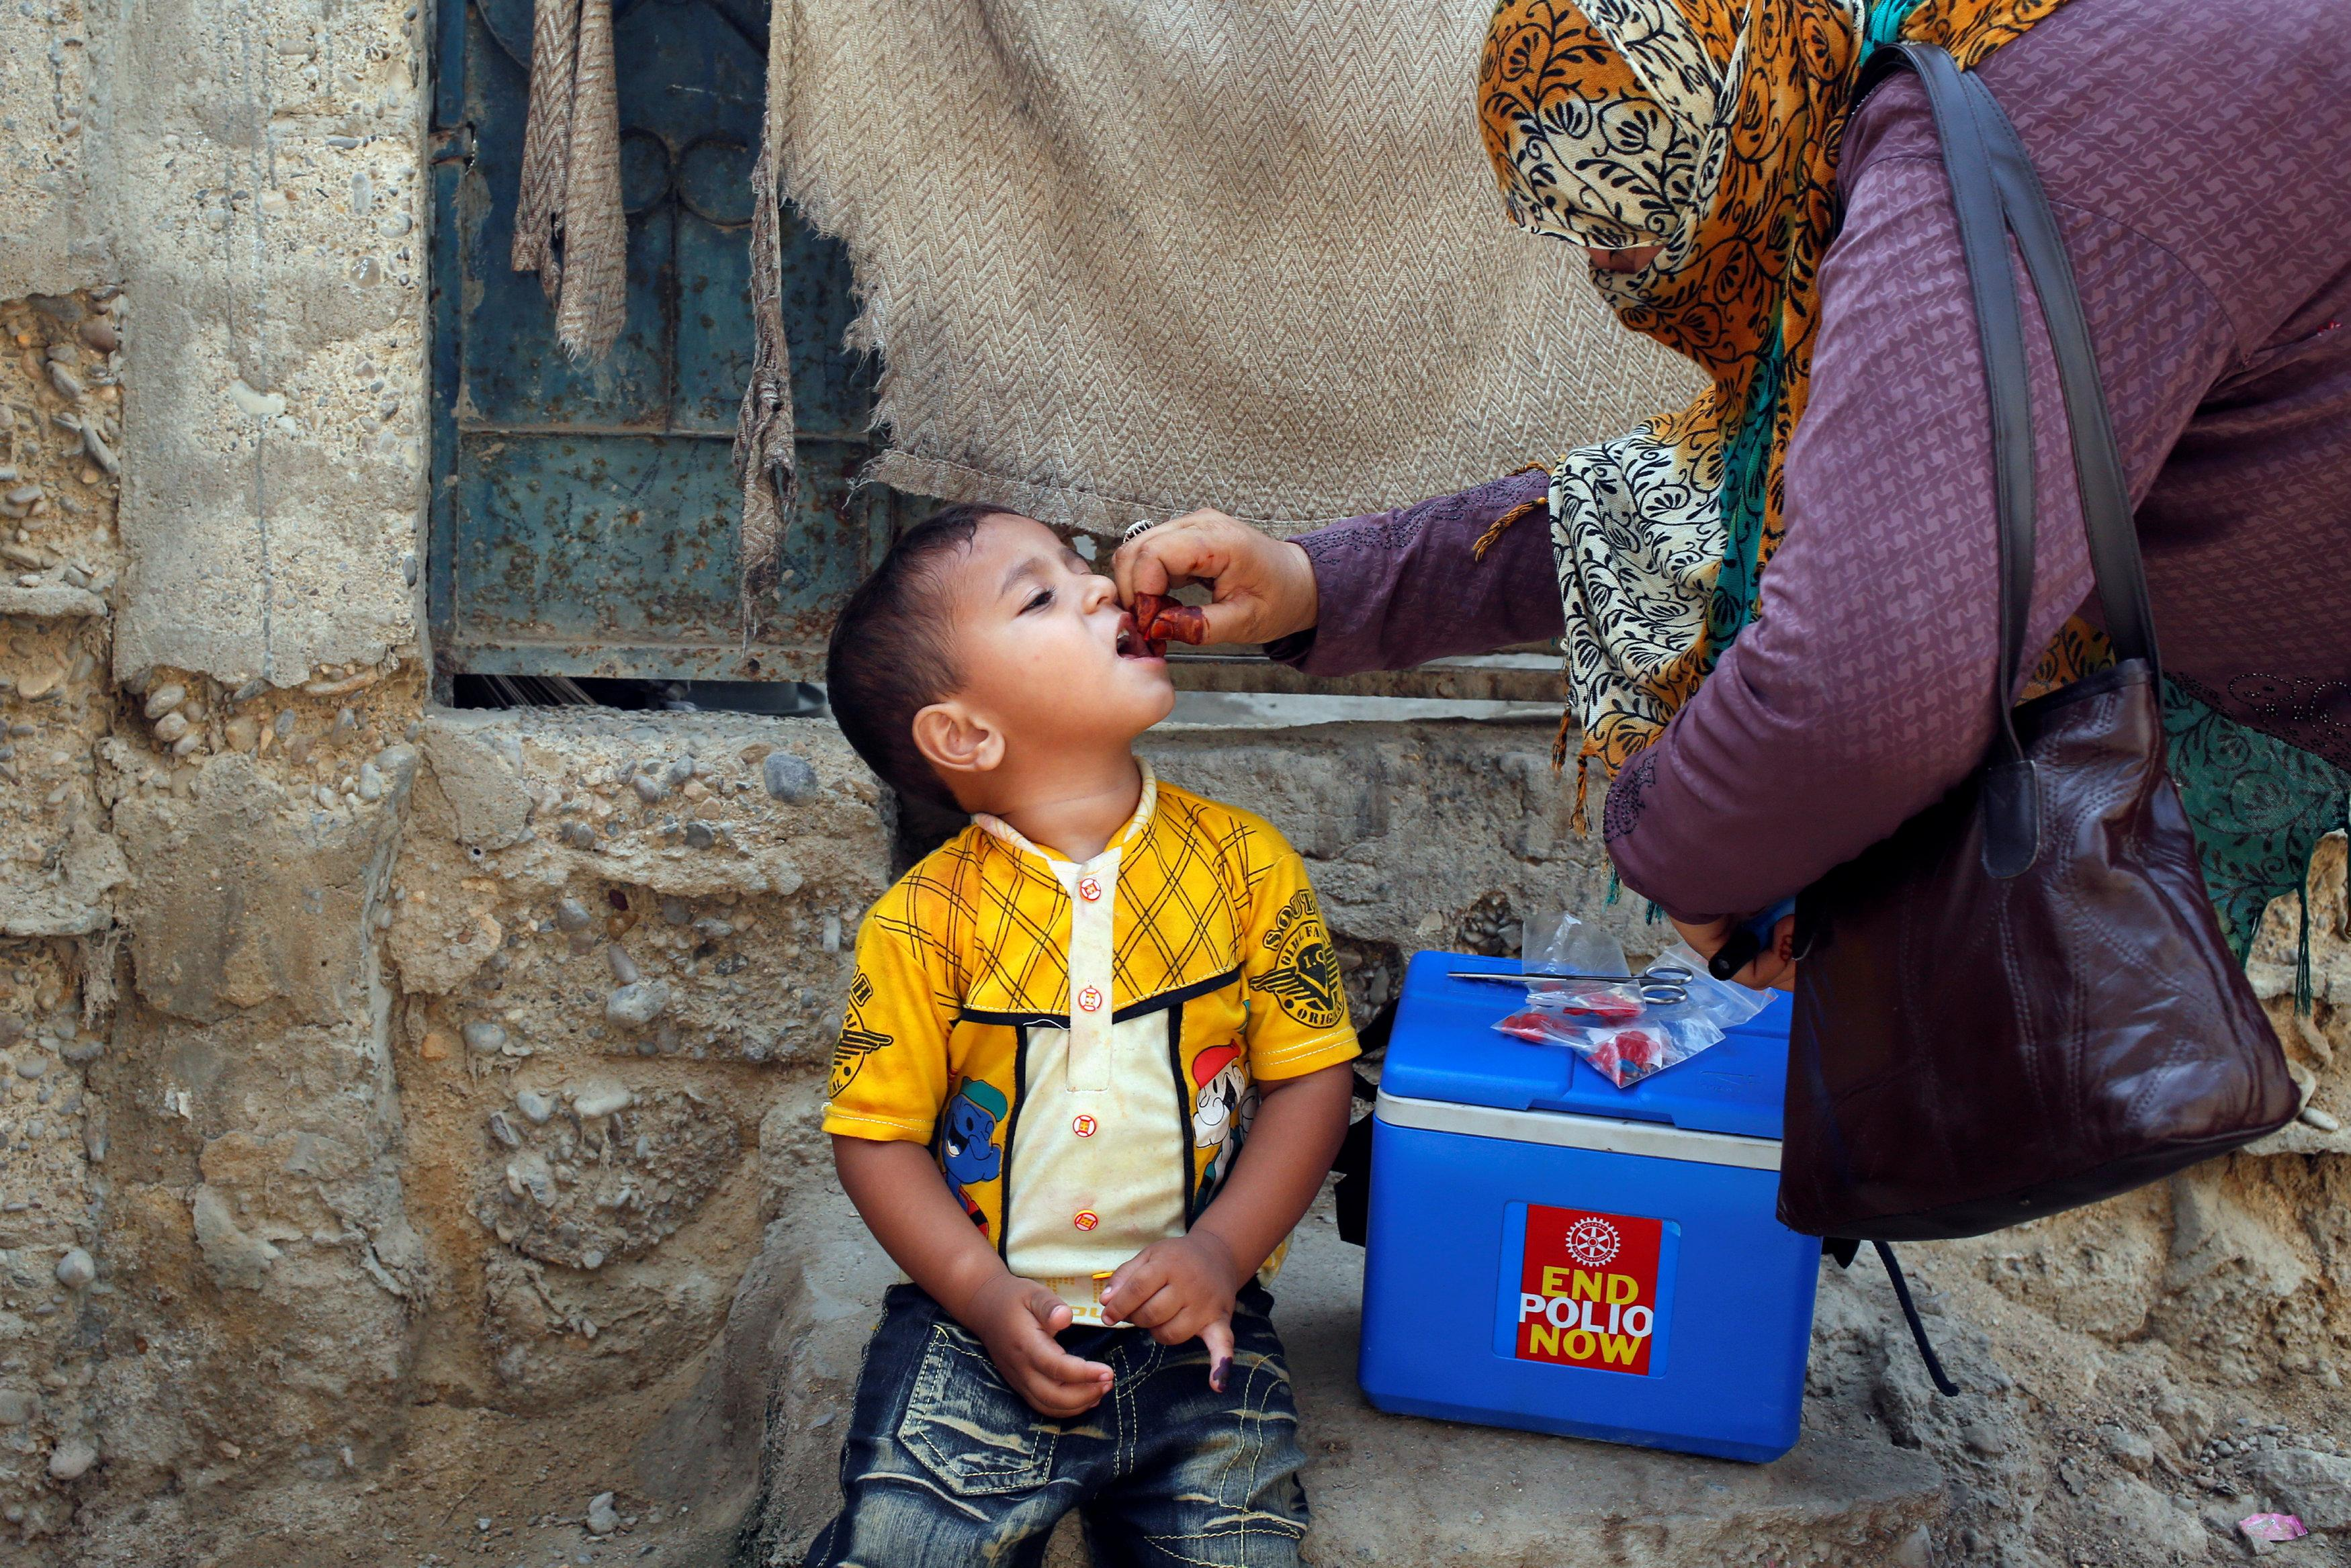 PM's adviser on polio eradication says campaign was a five-day affair and completed on schedule. PHOTO: REUTERS